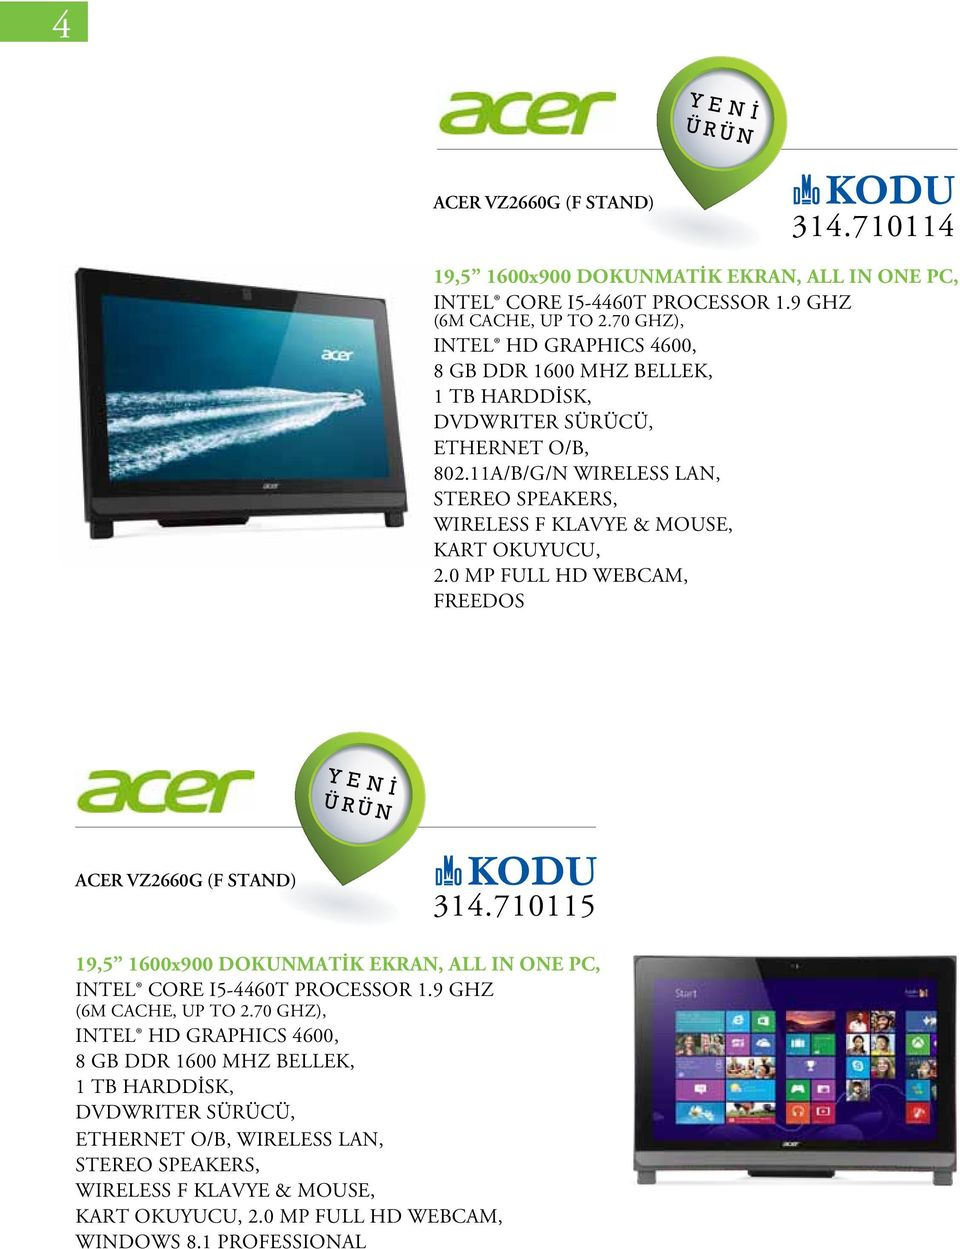 0 MP FULL HD WEBCAM, FREEDOS ACER VZ2660G (F STAND) 314.710115 19,5 1600x900 DOKUNMATİK EKRAN, ALL IN ONE PC, INTEL CORE I5-4460T PROCESSOR 1.